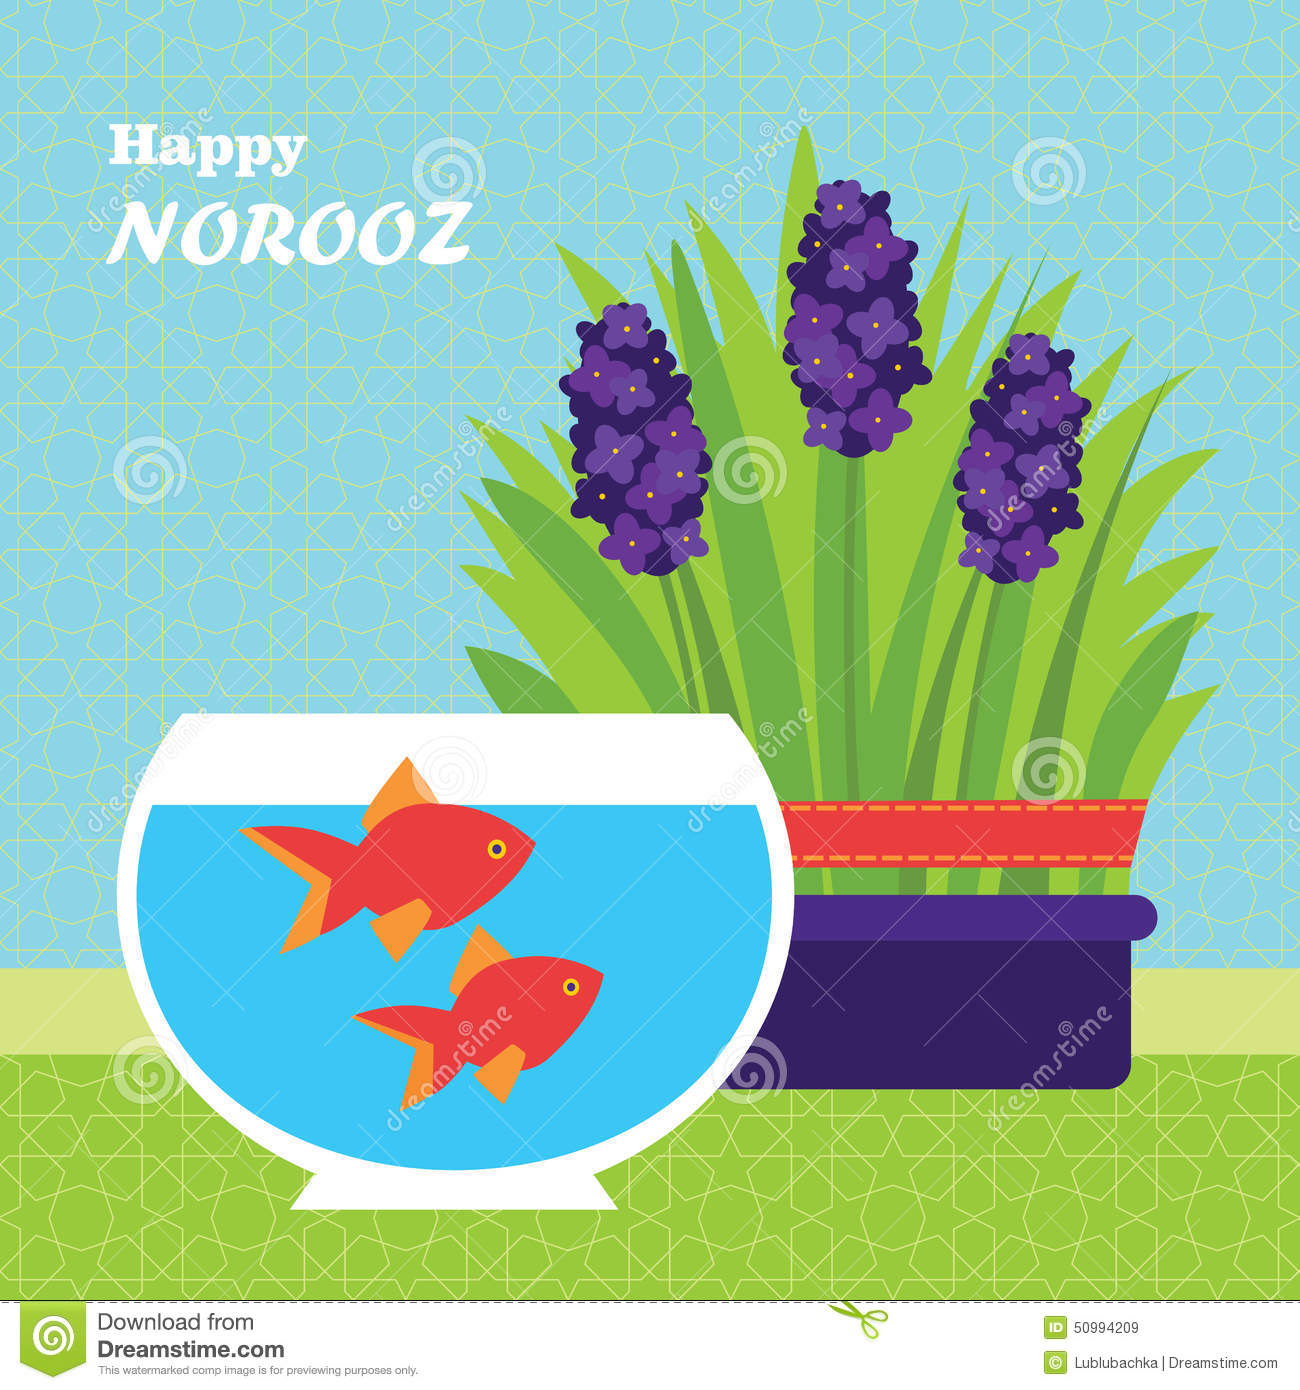 Happy persian new year card template illustration with fish and happy persian new year card template illustration with fish and ceremony cute kristyandbryce Gallery